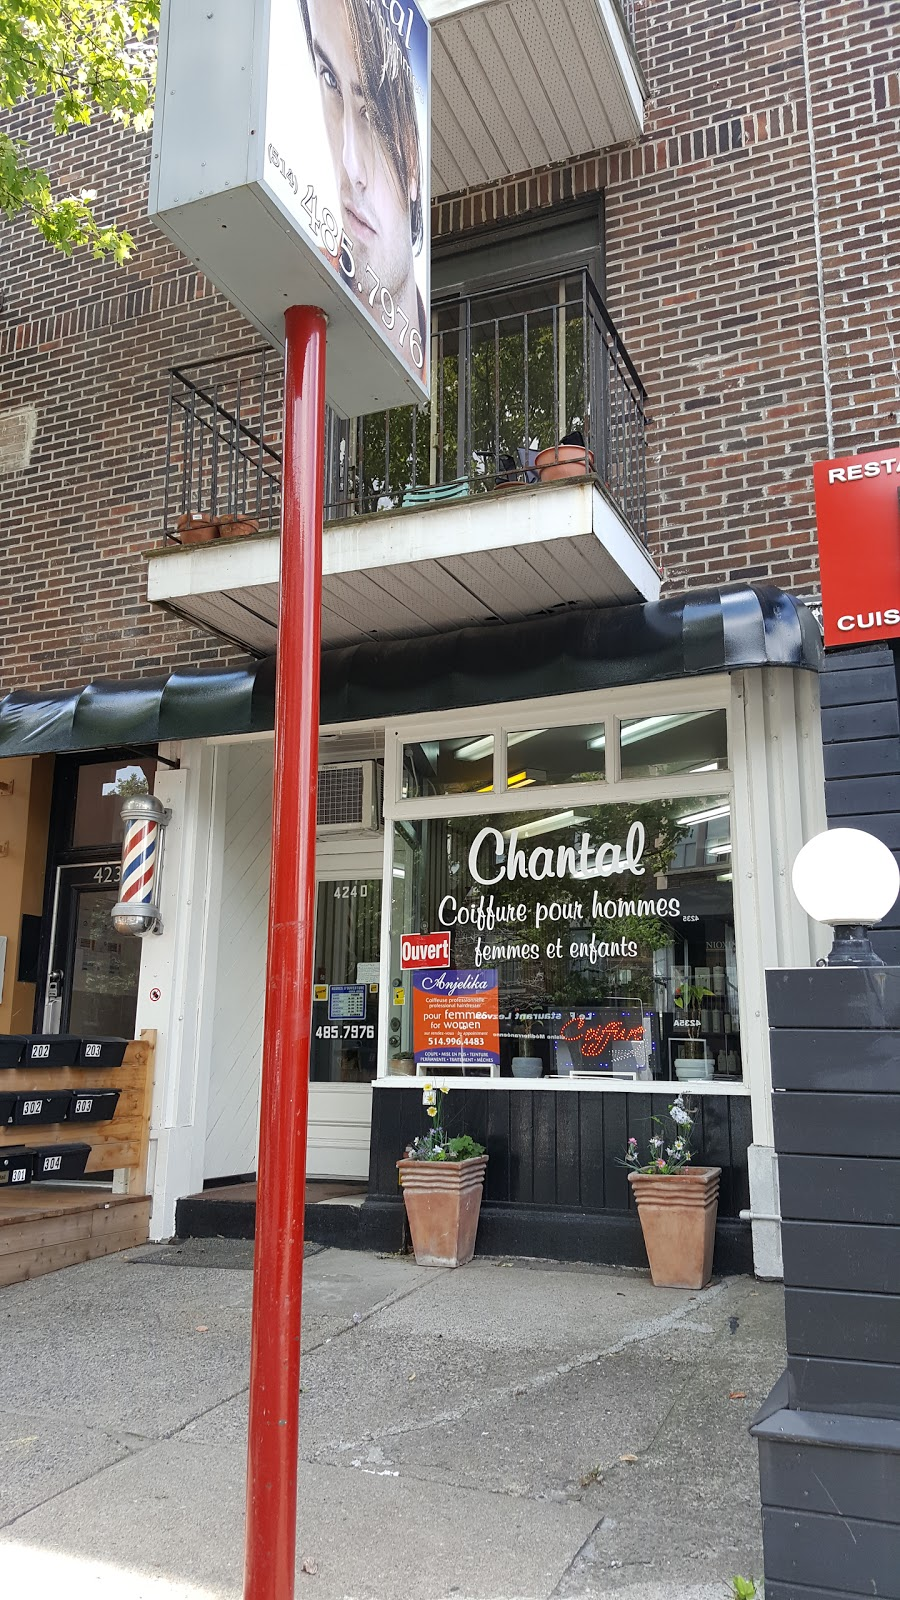 Chantal Coiffure Pour Hommes 4240 Boulevard Decarie Montreal Qc H4g 3k3 Canada